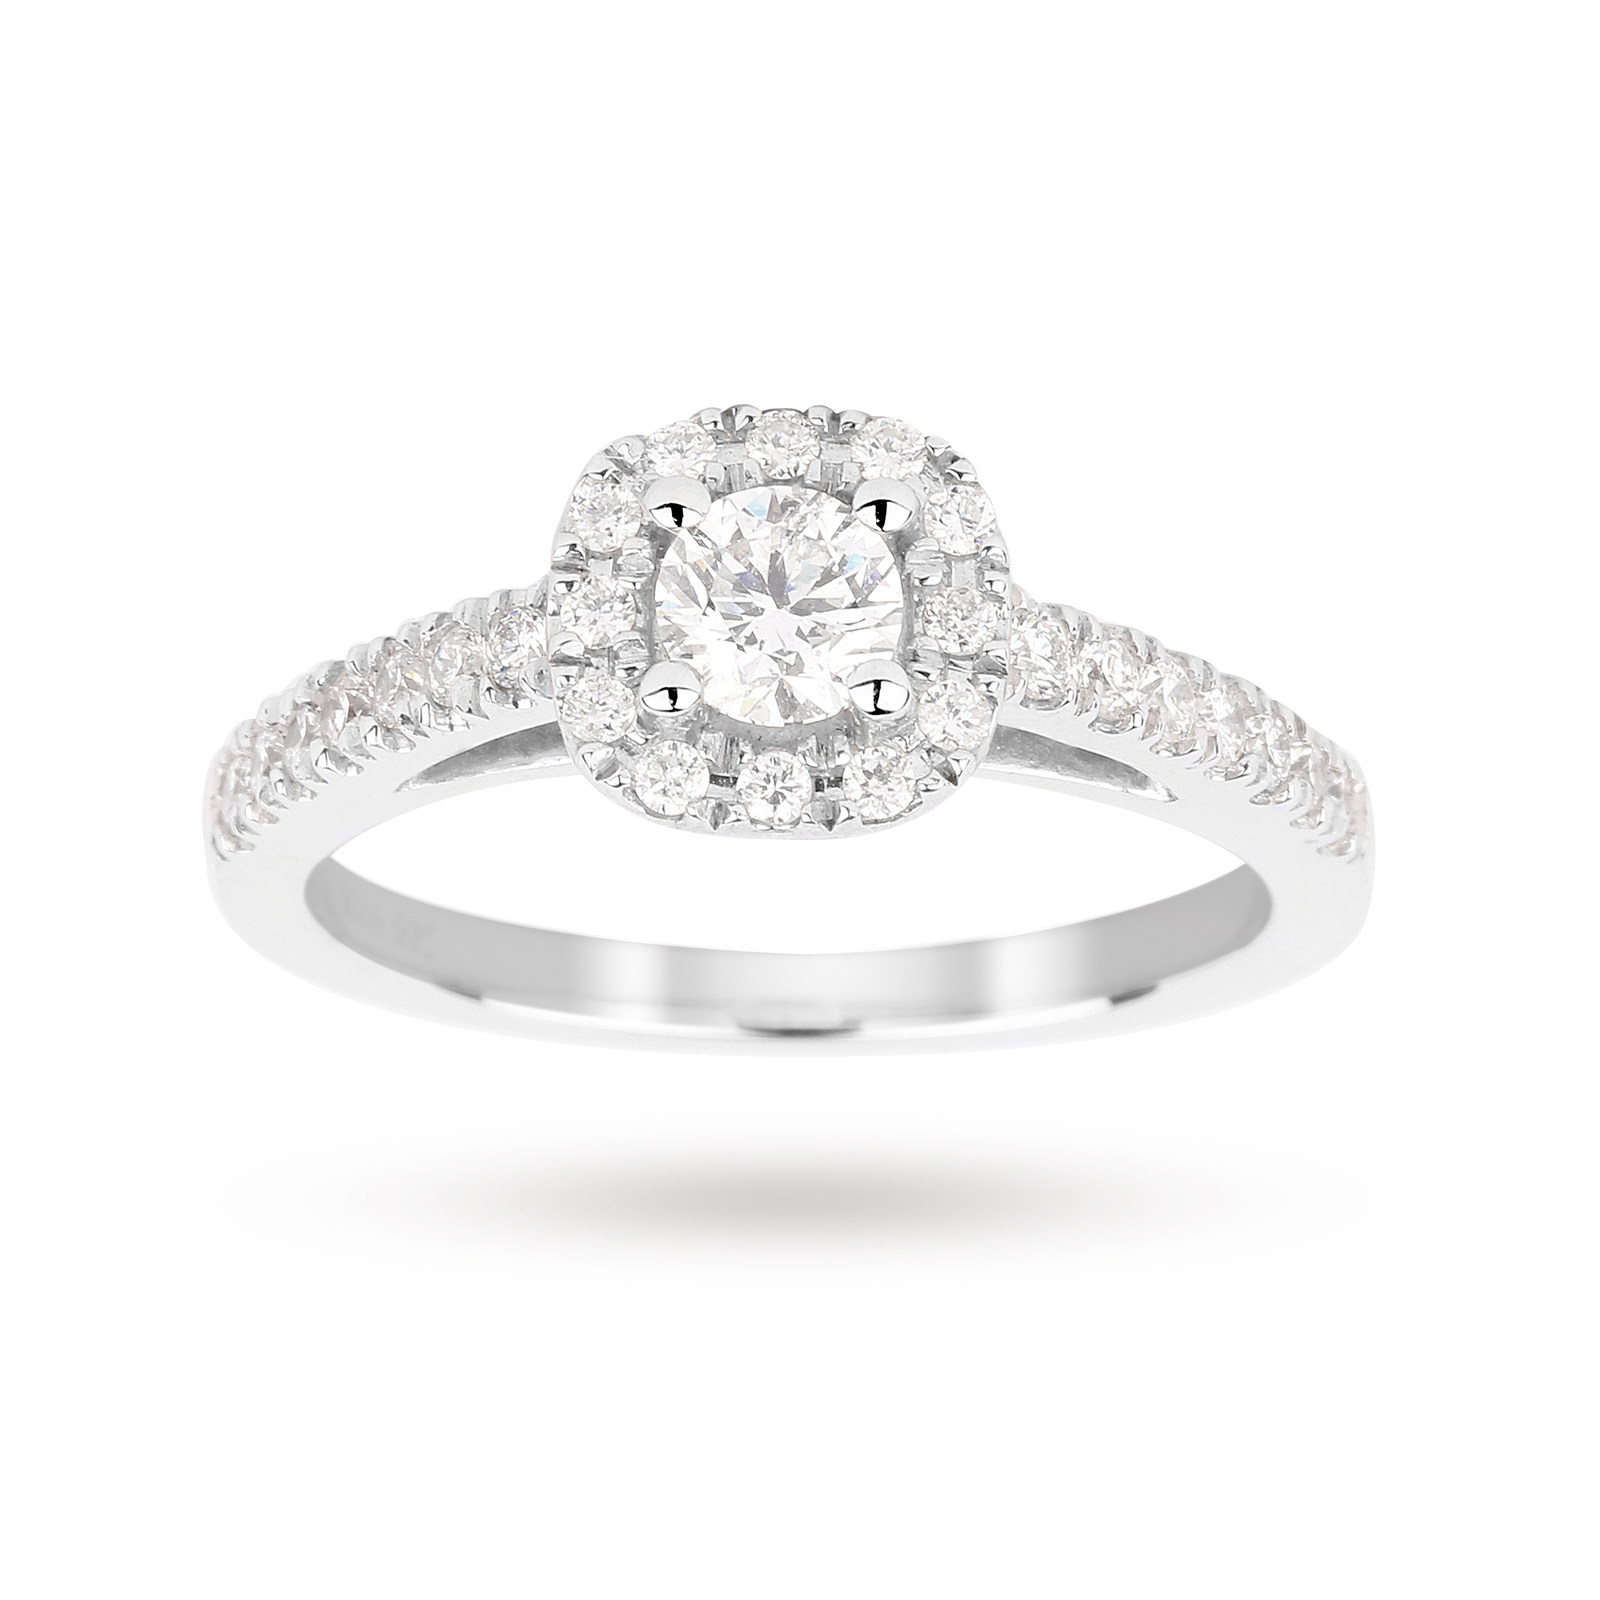 Brilliant cut 0.65 total carat weight diamond halo ring with diamond set shoulders in 18 carat white